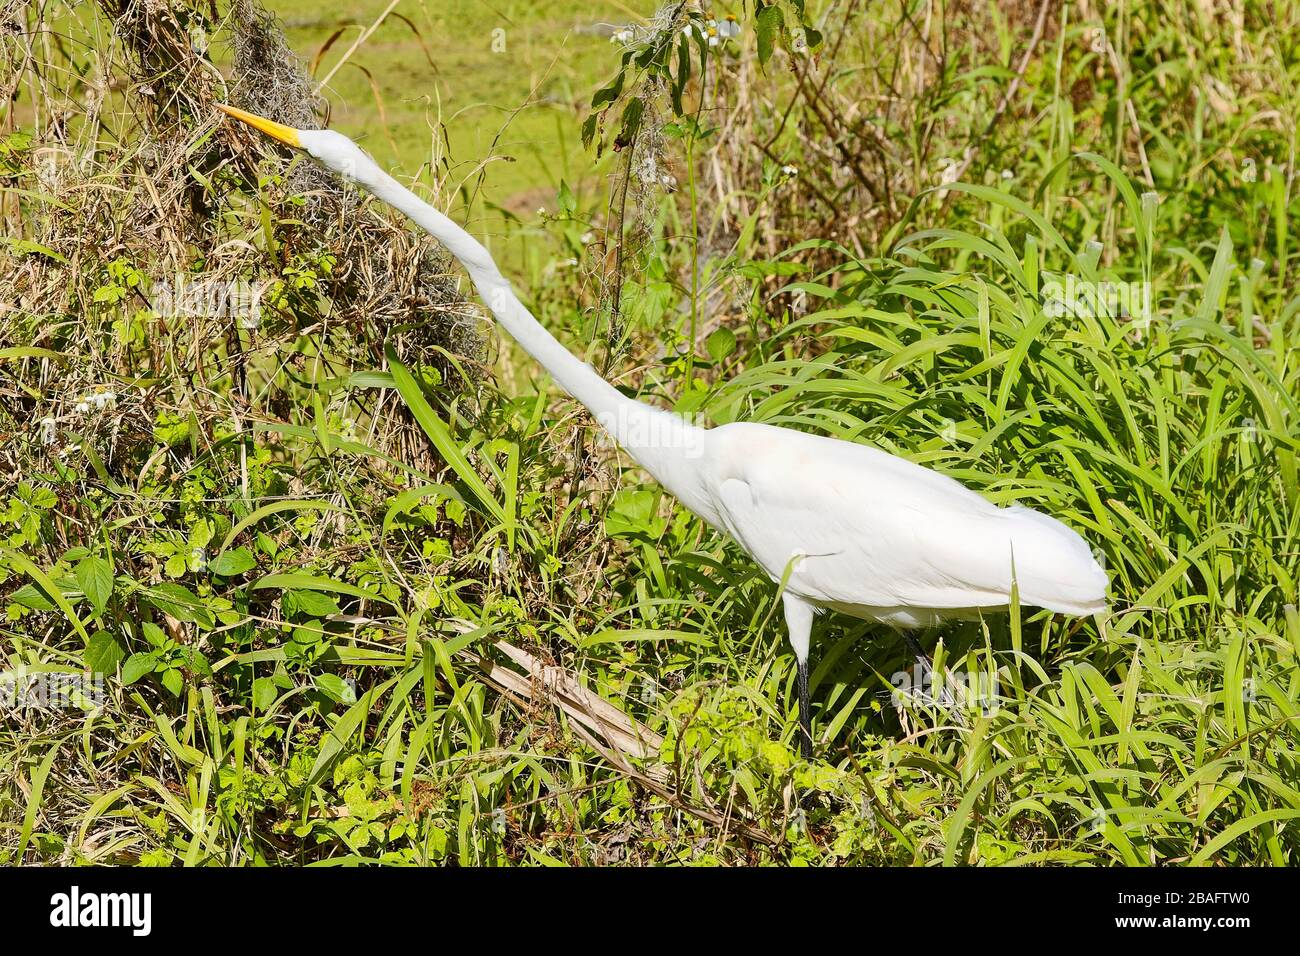 https://c8.alamy.com/comp/2BAFTW0/great-egret-animal-hunting-for-food-neck-stretched-out-nature-tall-bird-white-wildlife-ardea-alba-circle-b-bar-reserve-florida-lakeland-fl-2BAFTW0.jpg